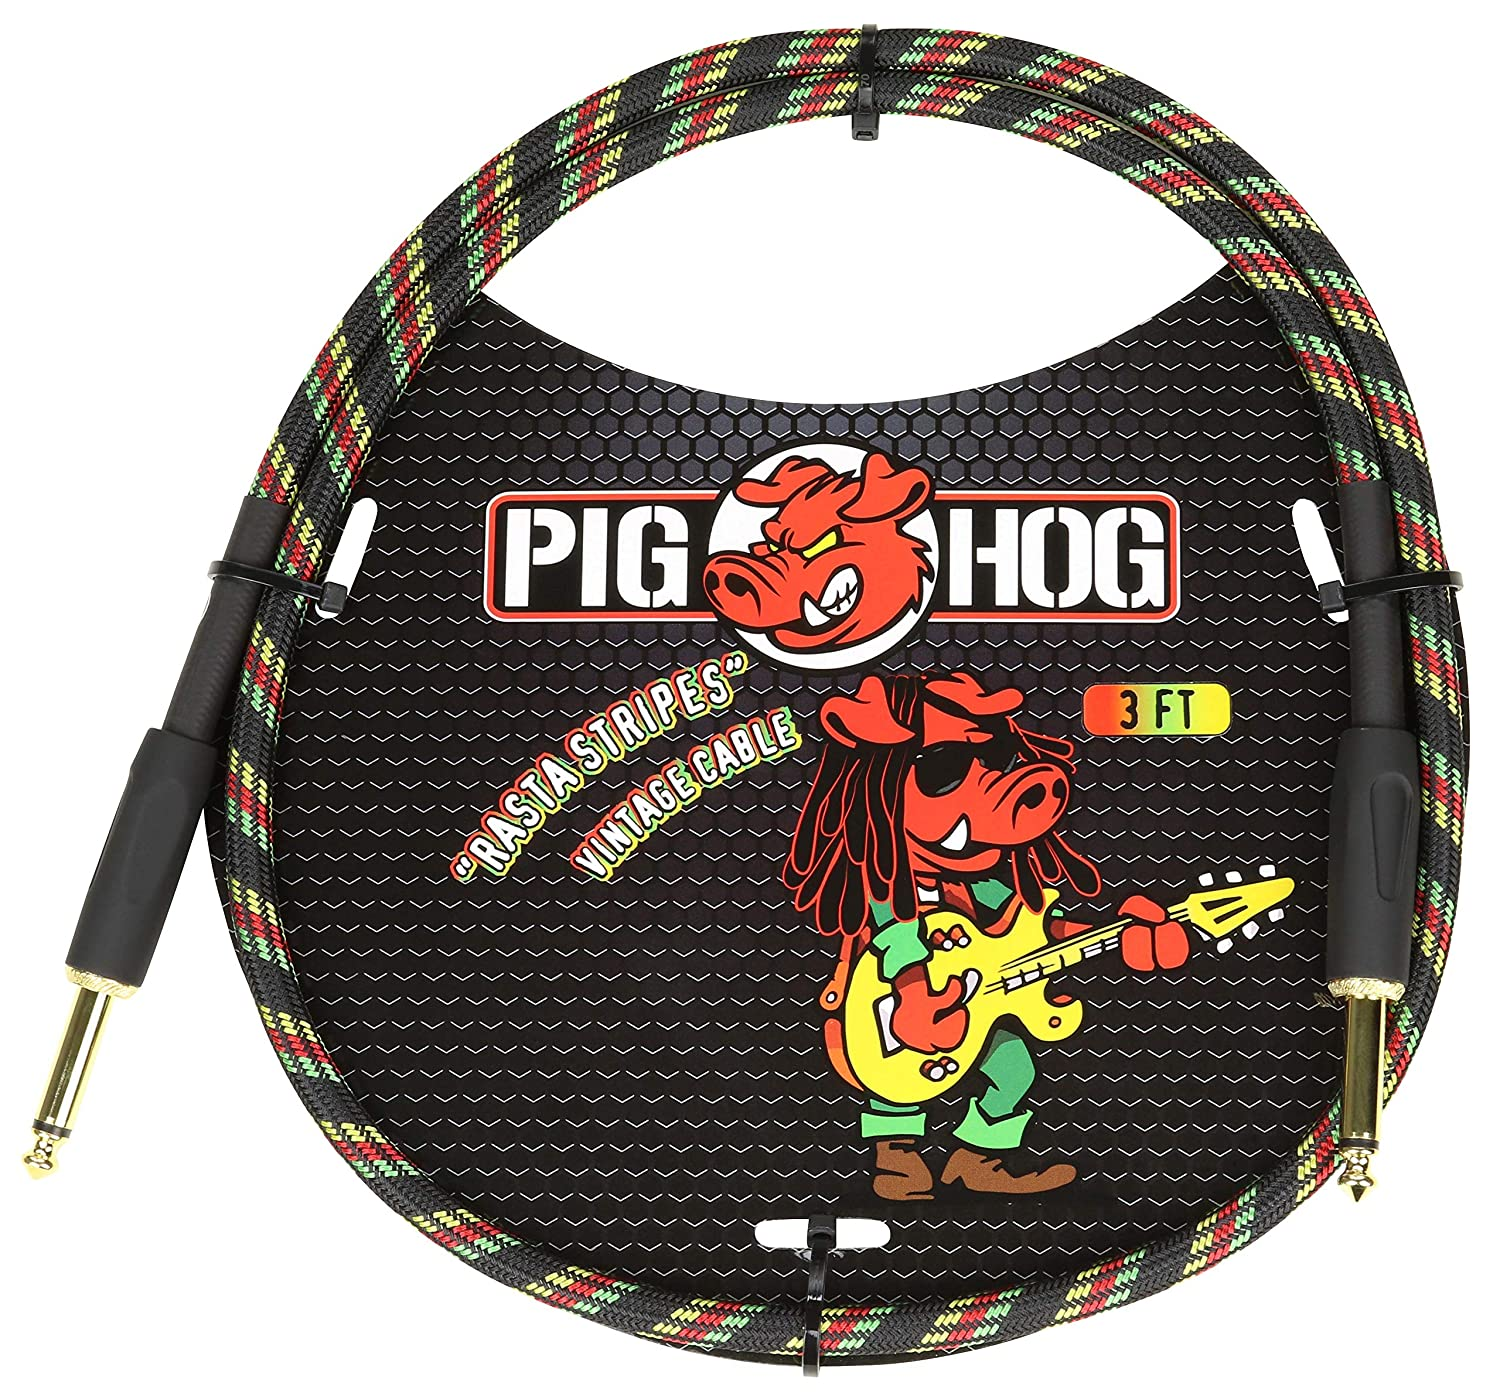 Pig Hog PCH3AG 1//4 to 1//4 Amplifier Grill Instrument Patch Cable 3 Feet